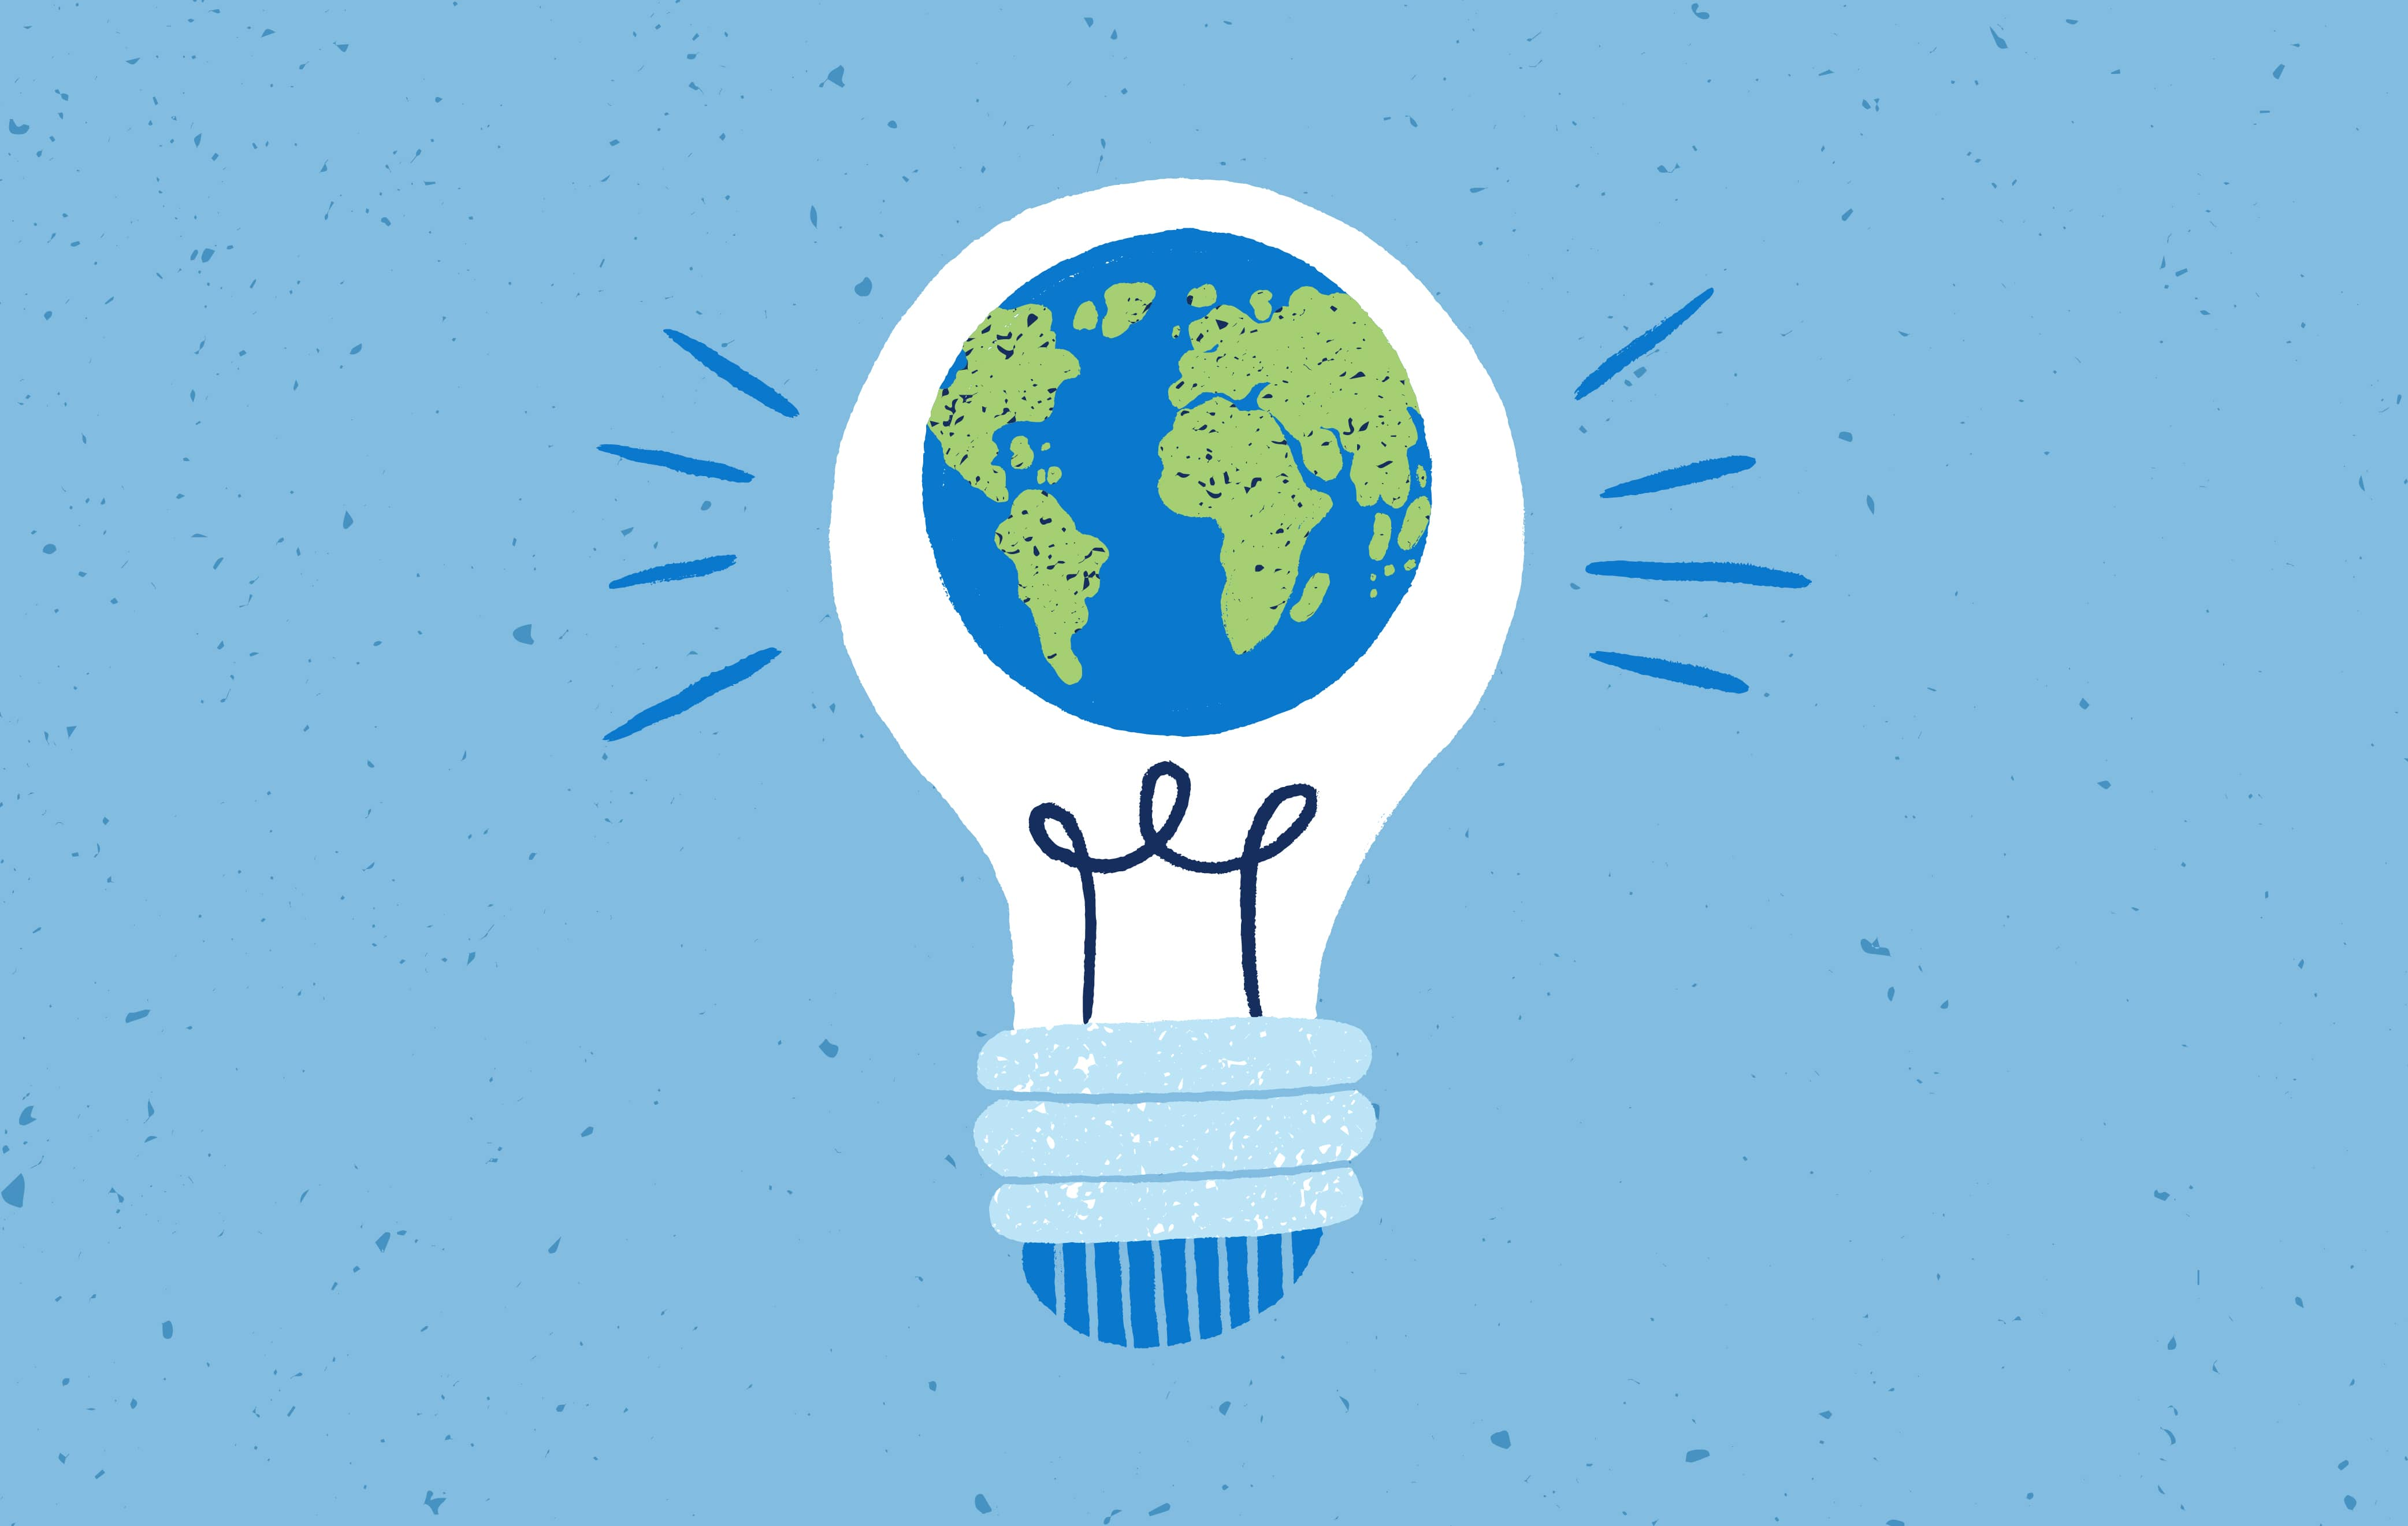 Illustration of a lightbulb with earth inside it on a blue background.